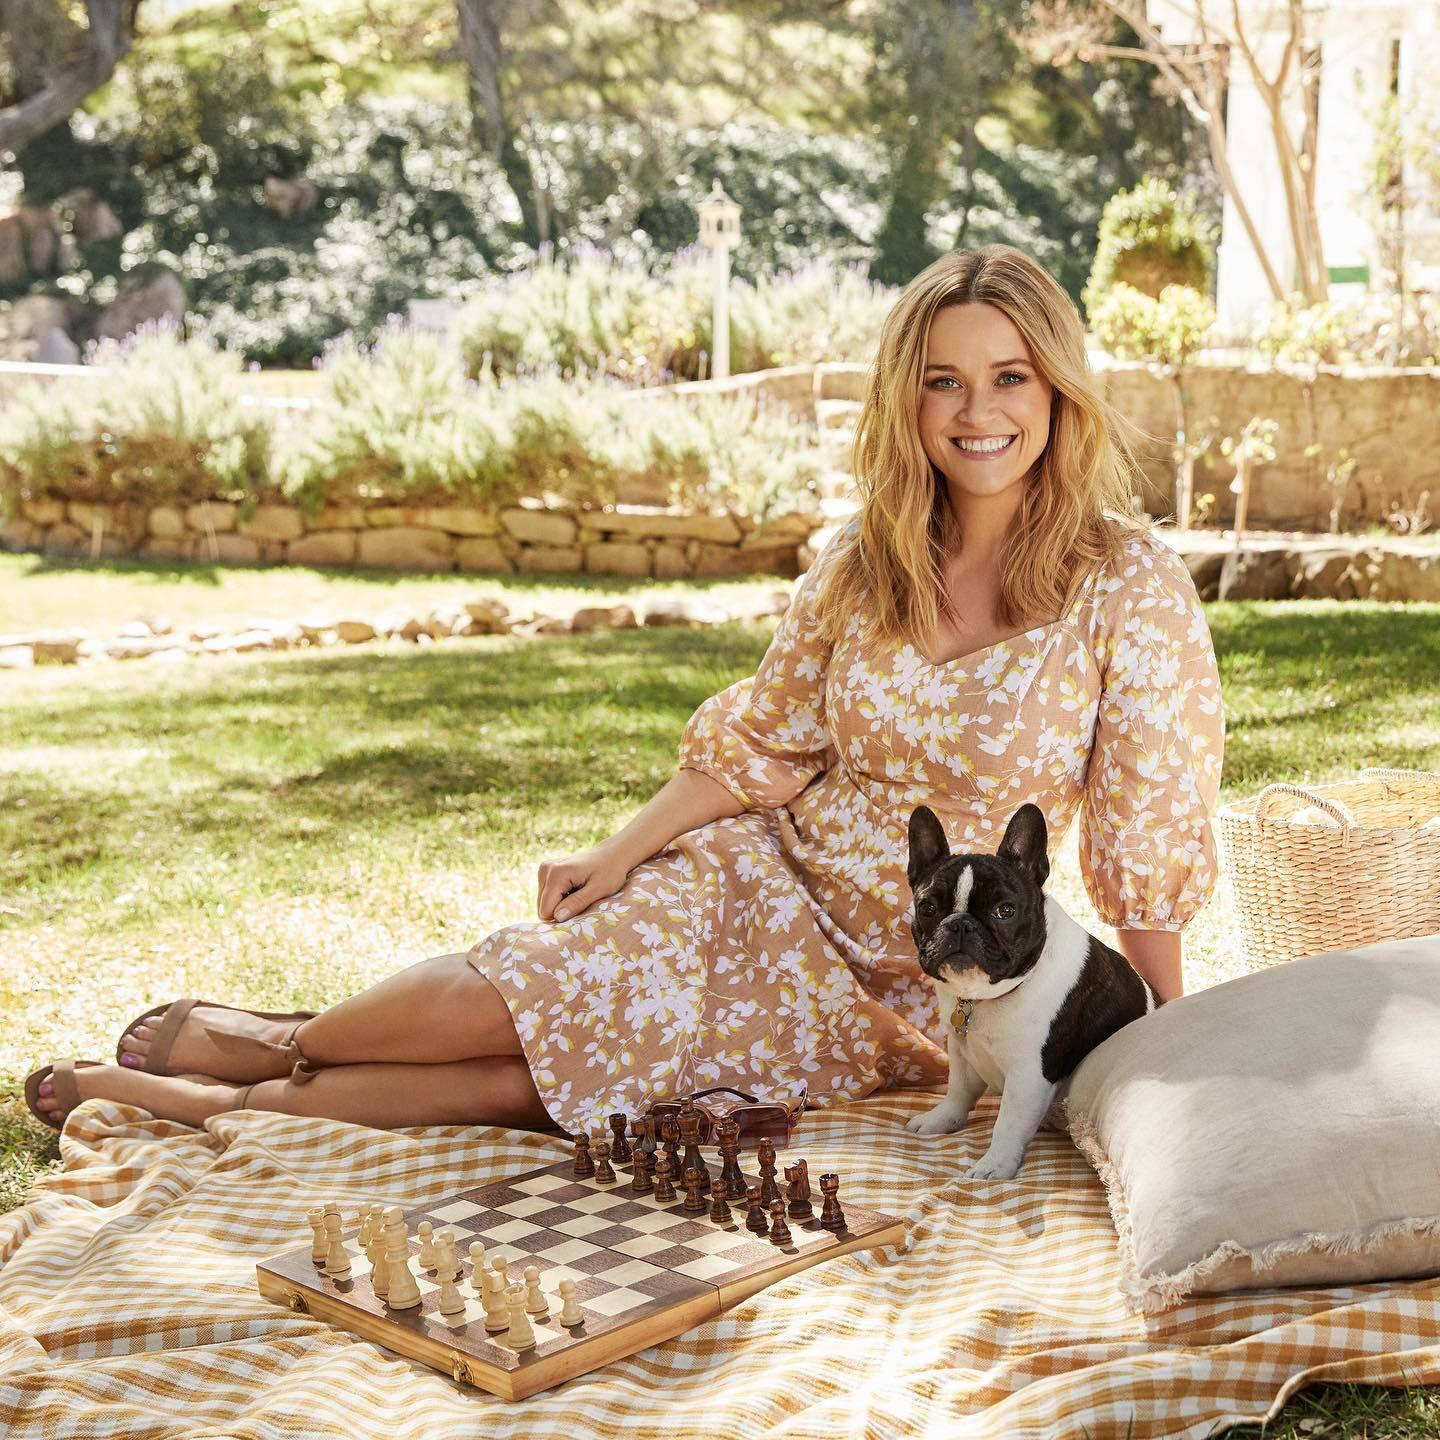 Reese Witherspoon Soles photo 4